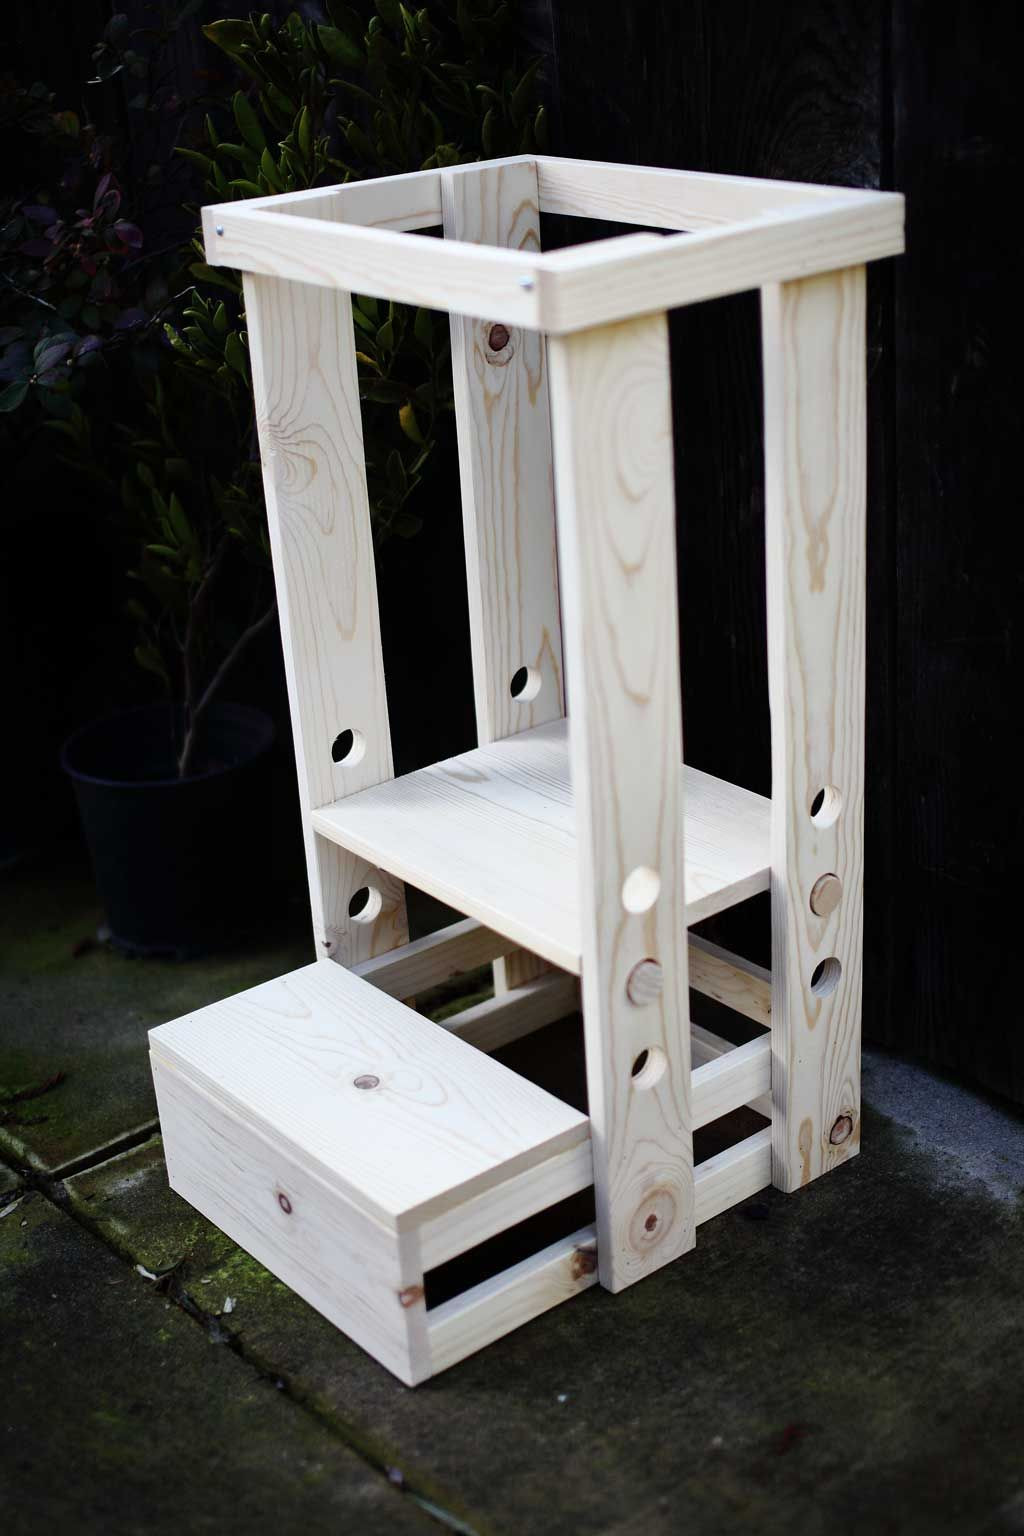 DIY Toddler Step Stool  How to Build a DIY Toddler Step Stool with Guard Rail in